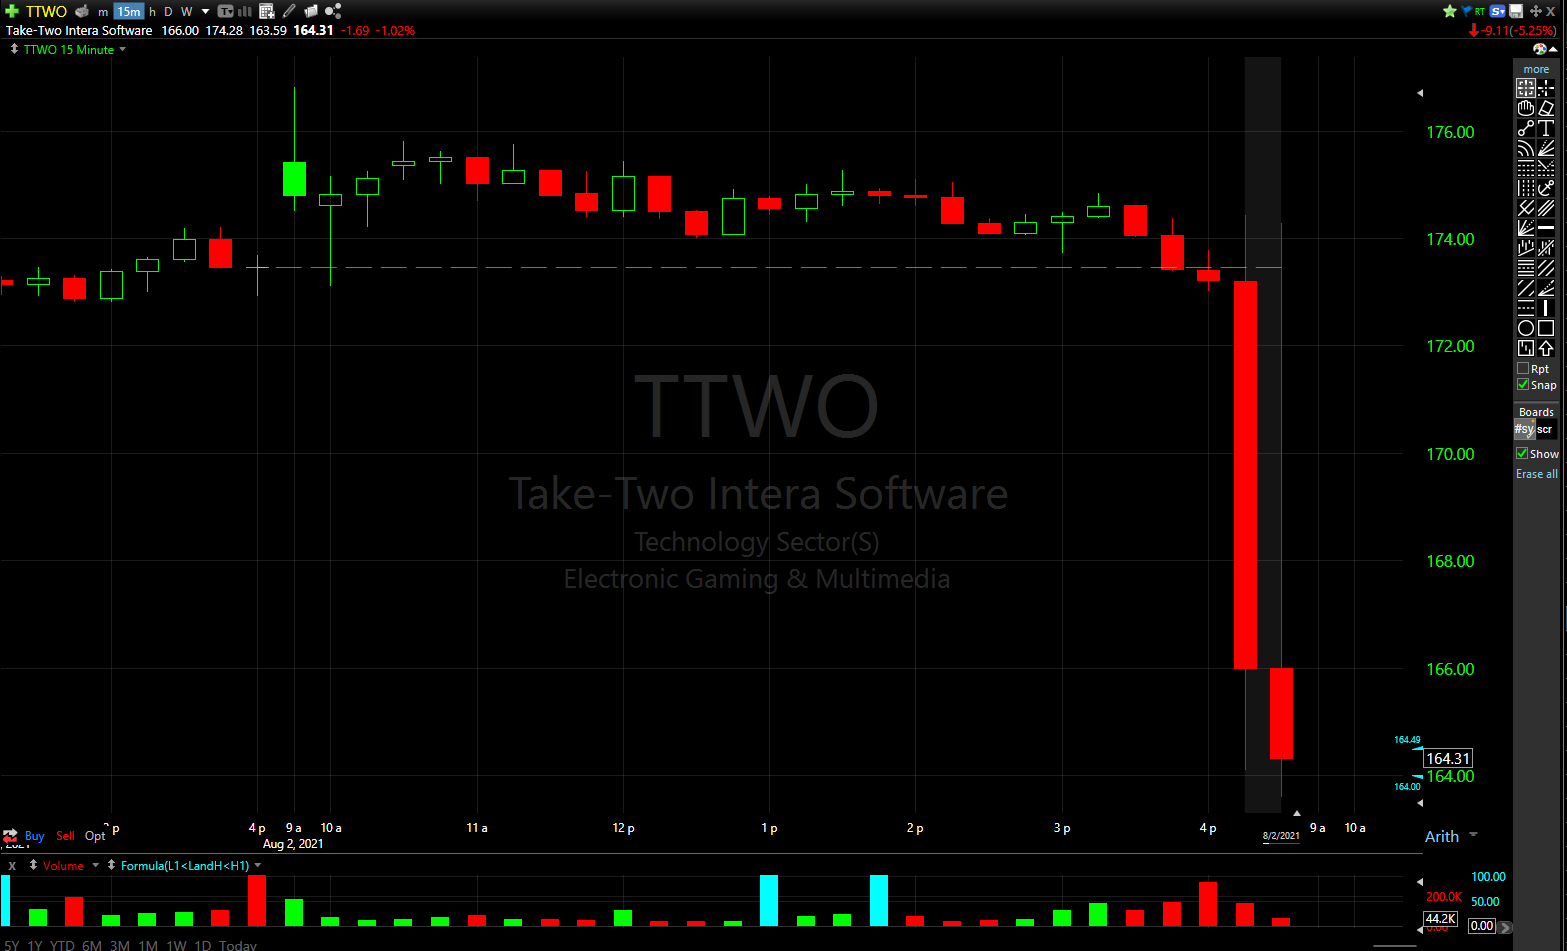 Take-Two Interactive's stock fell over 5% in afterhours trading on disappointing guidance.